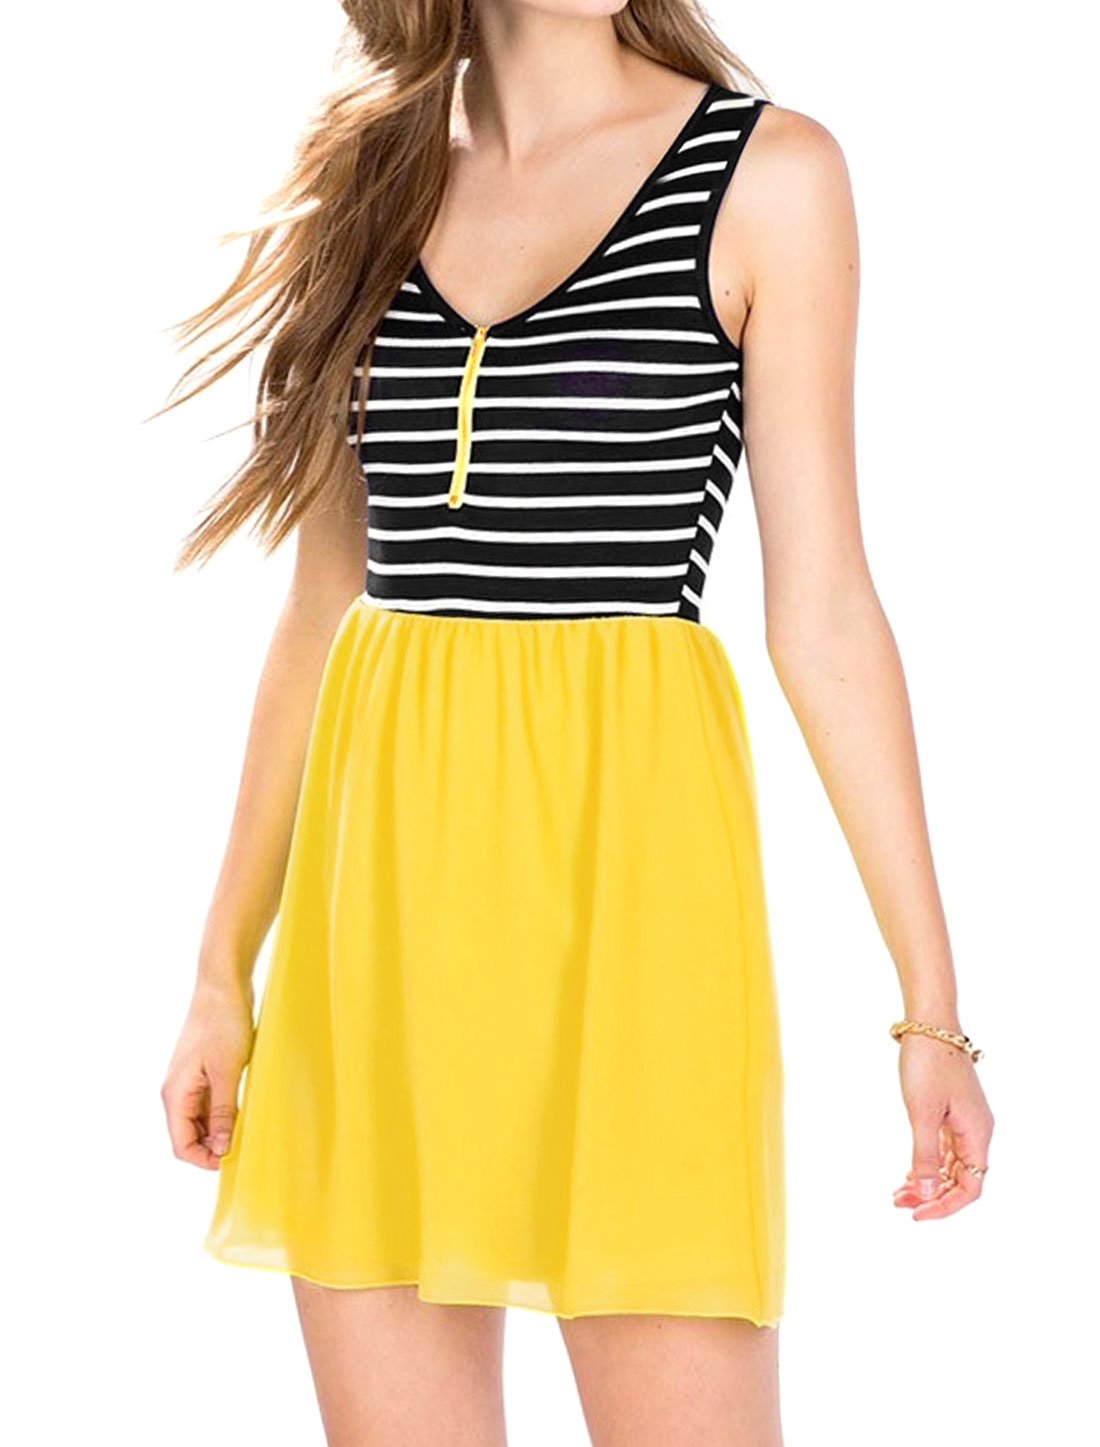 Women Sleeveless Zipper Front Stripes Paneled A Line Dress Yellow L